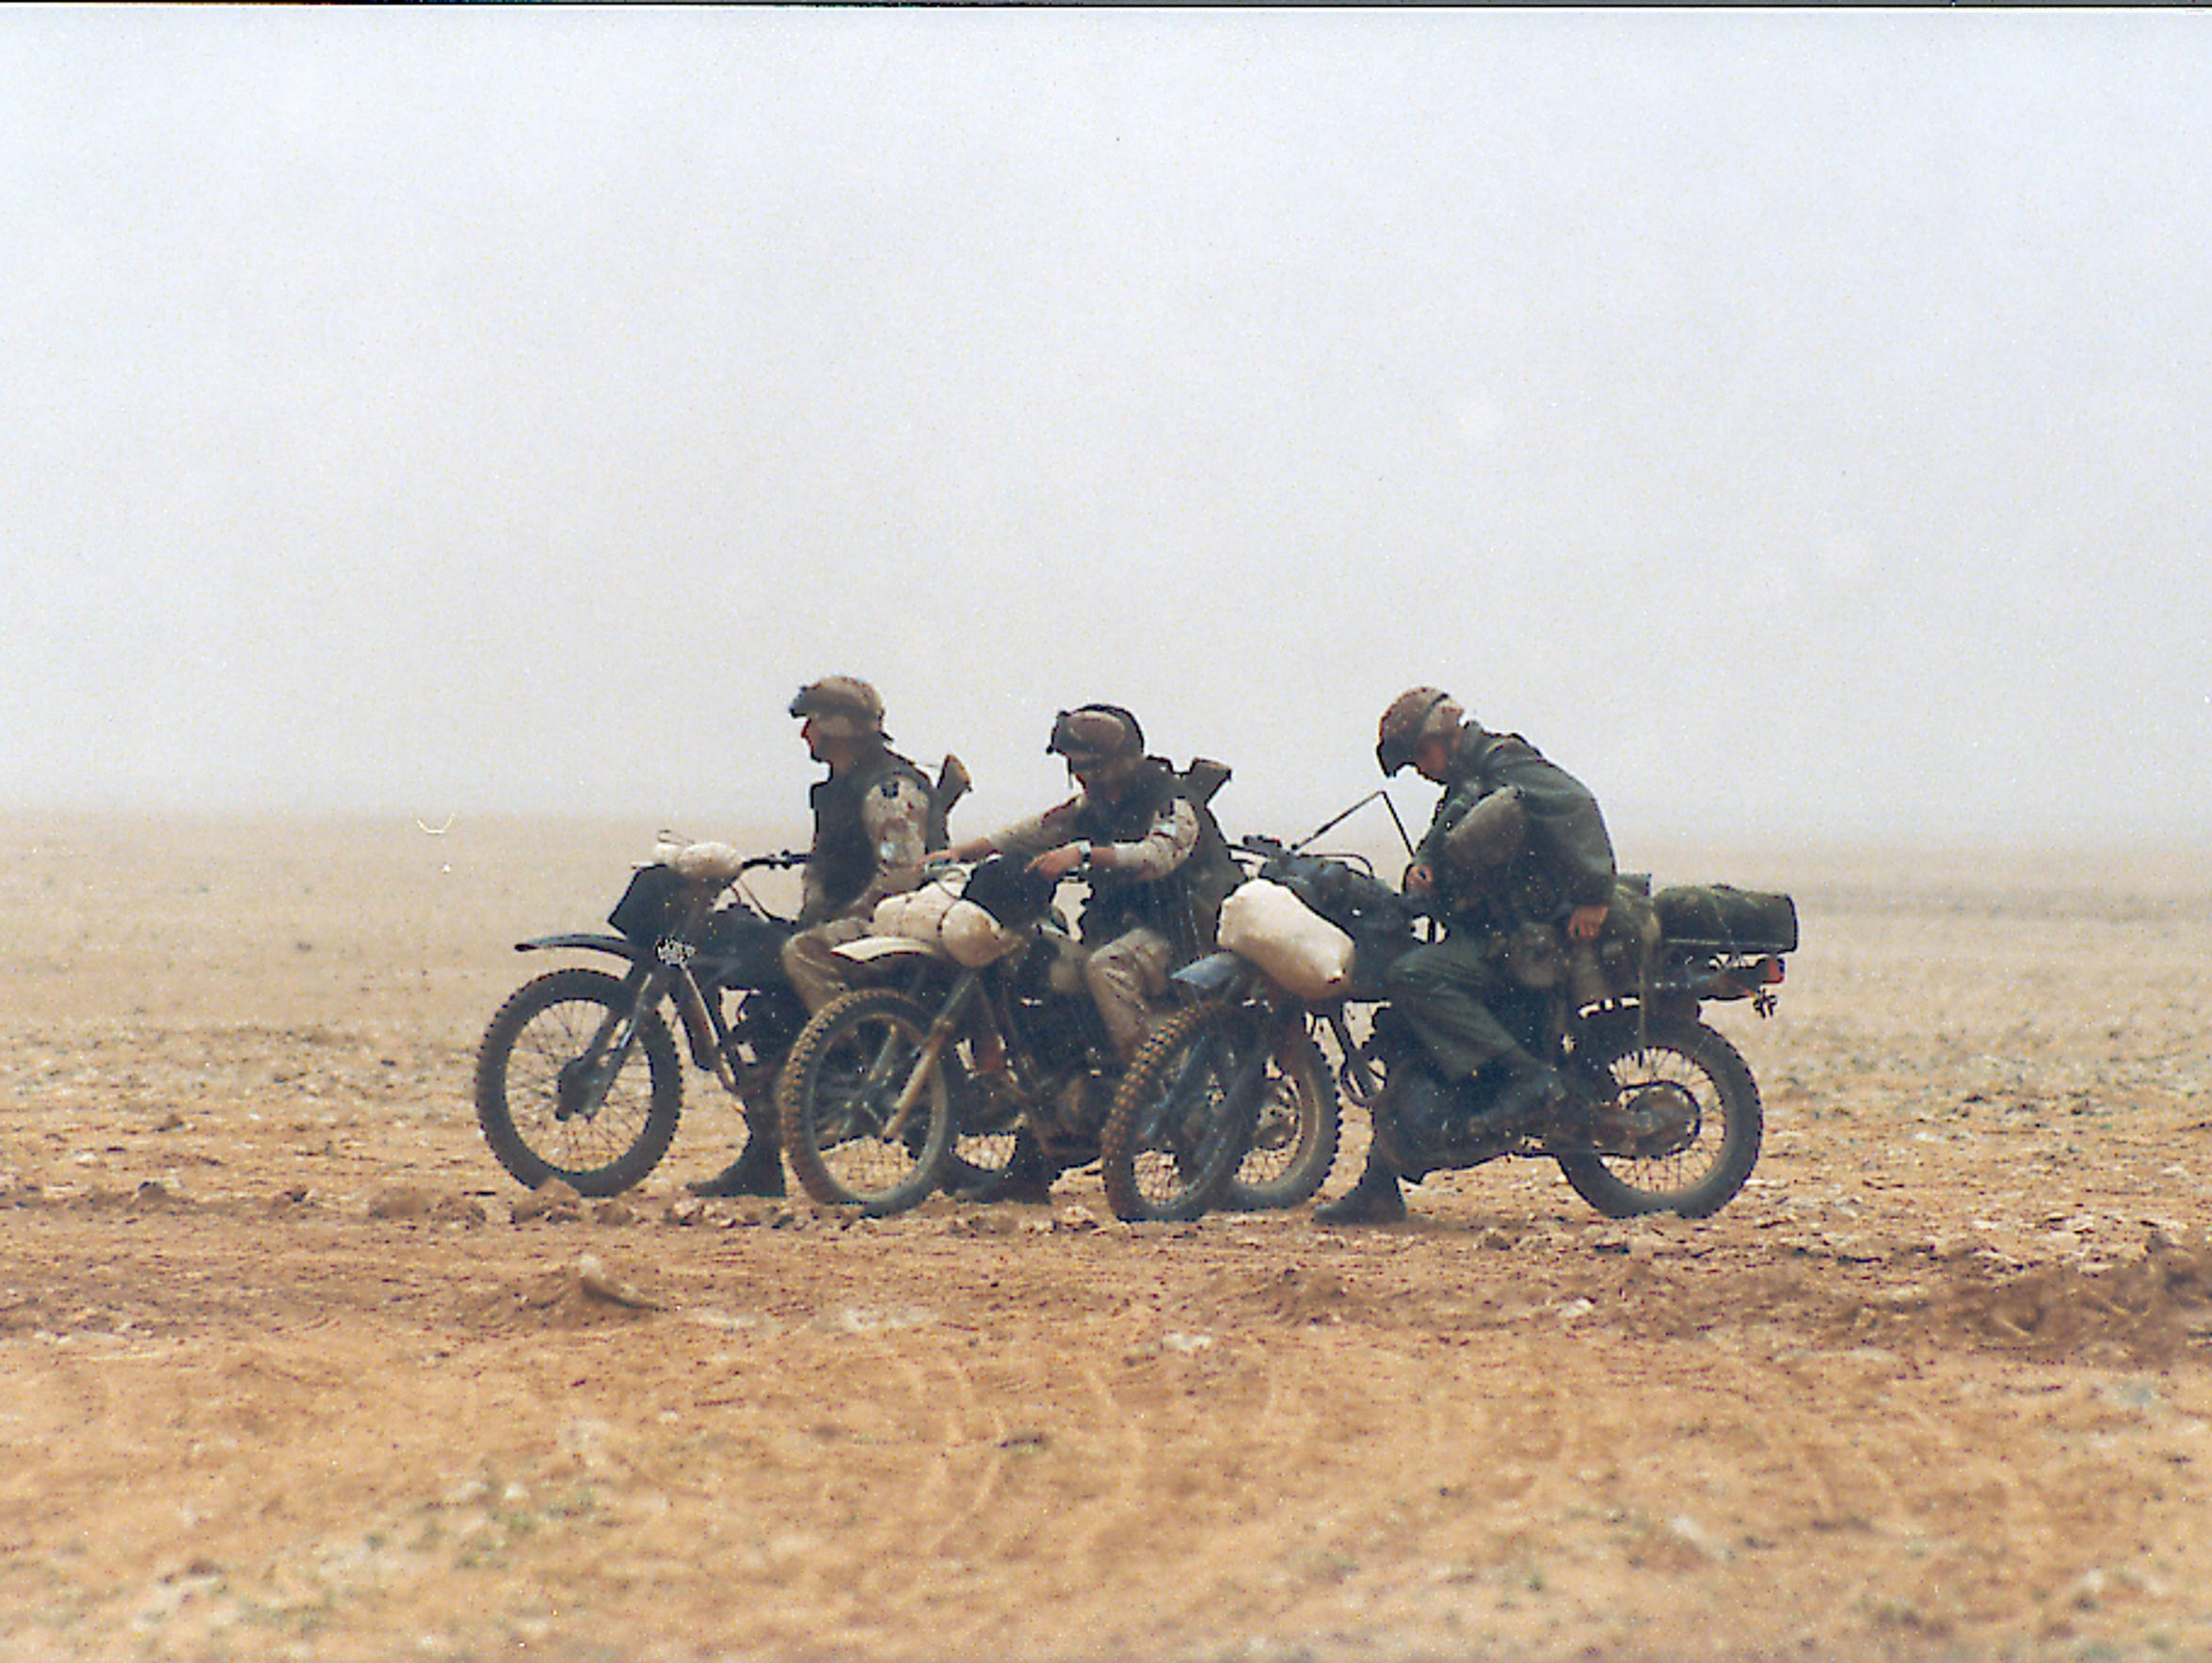 Motorcycle scouts pause during the Gulf War in 1991.